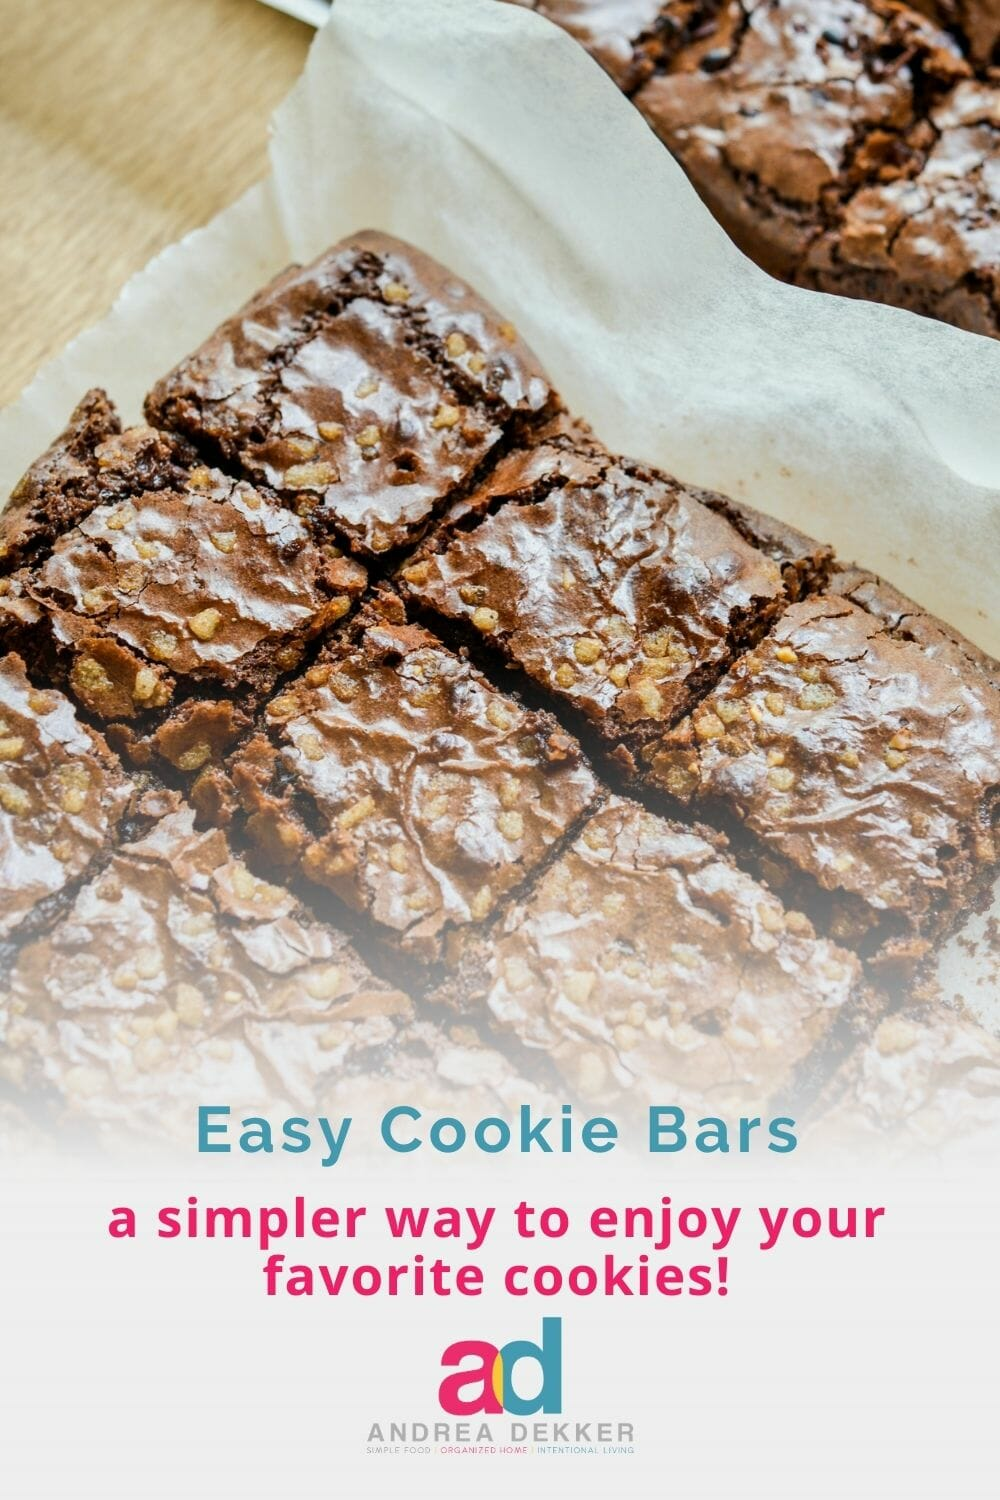 Maximize your time in the kitchen with my 3 tips to simplify cookies — including the versatile recipe for cookie bars that works with all your favorite cookie doughs! via @andreadekker